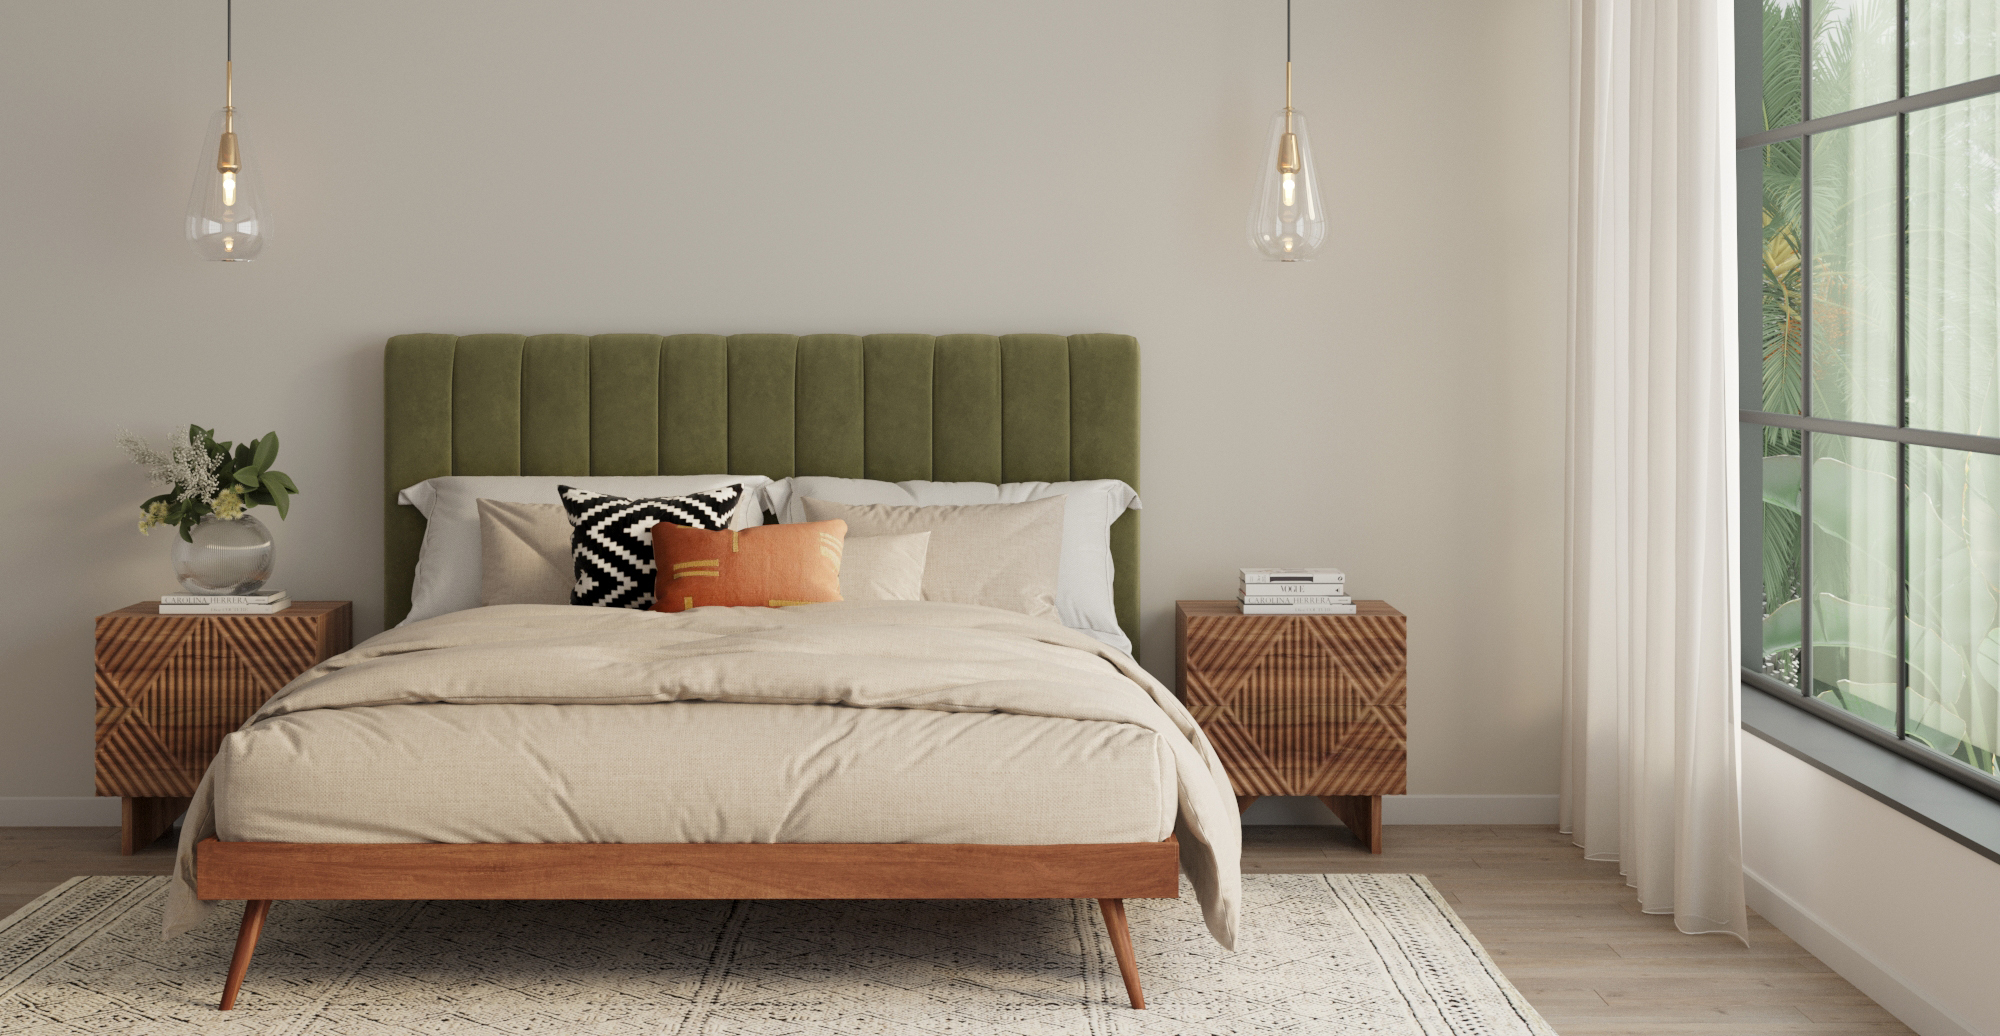 Brosa Frank Bed Frame and Megan Bed Head in Contemporary Room